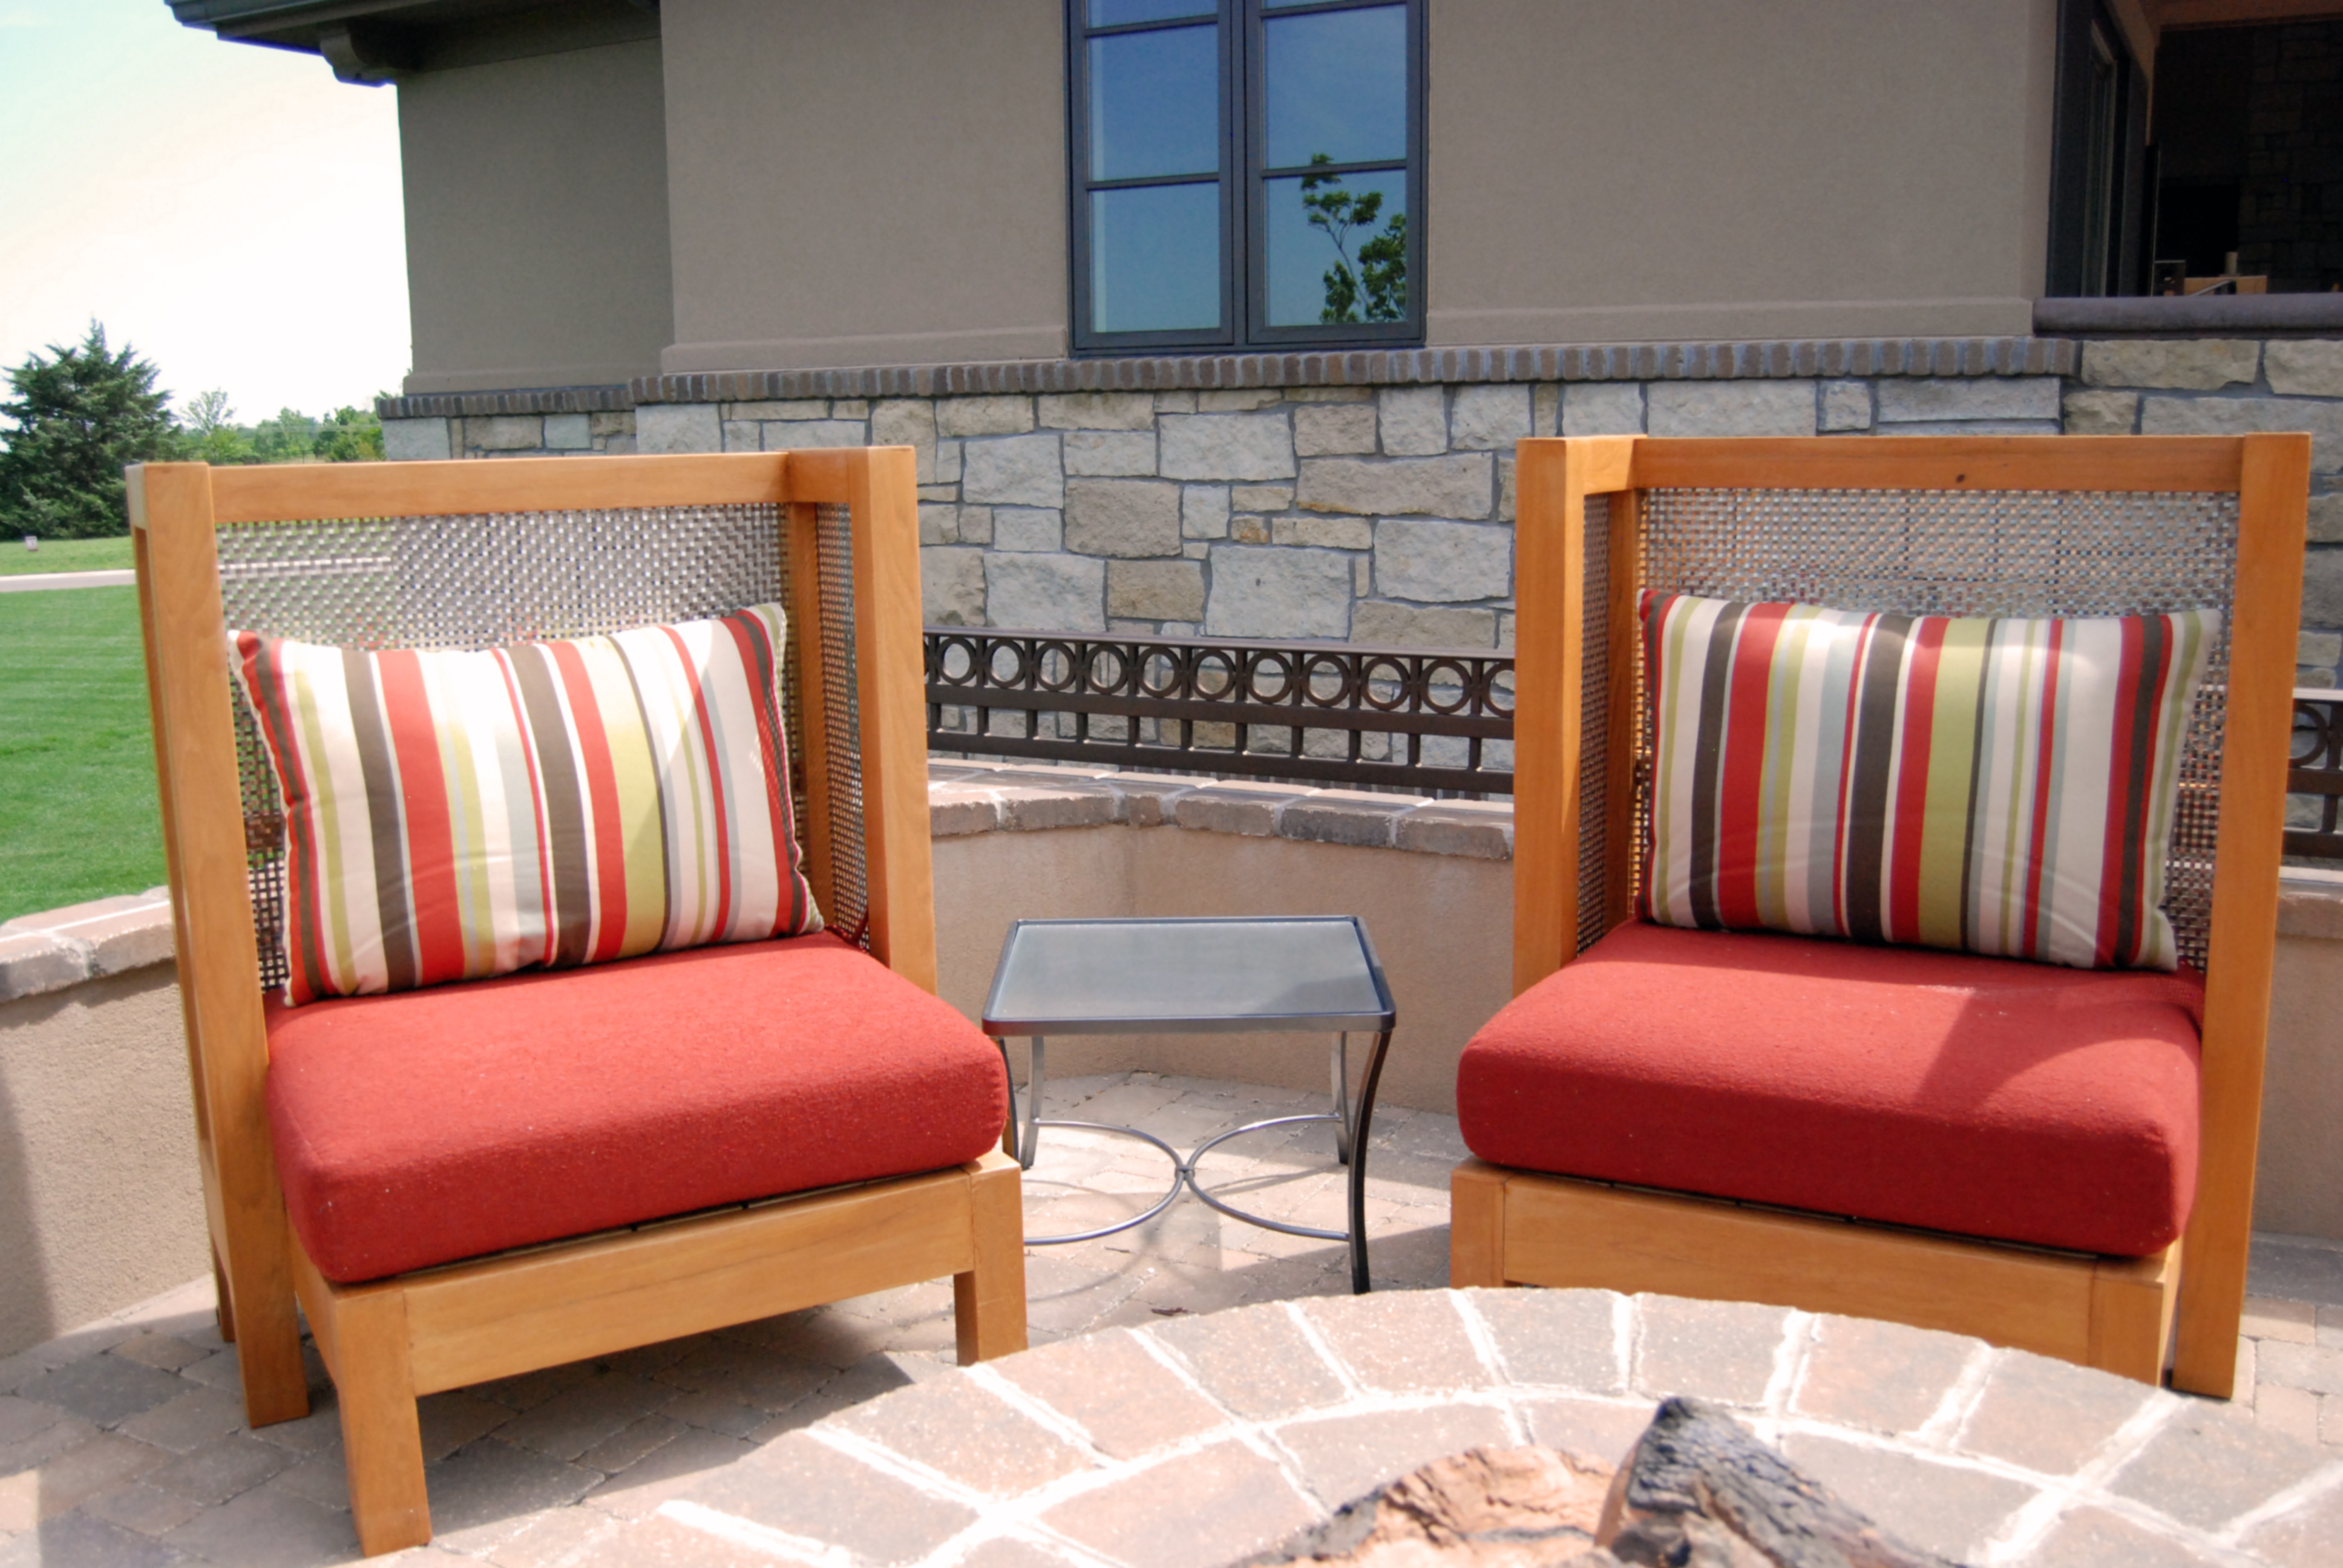 The Banker Wire mesh absorbs warmth from the fire pit.